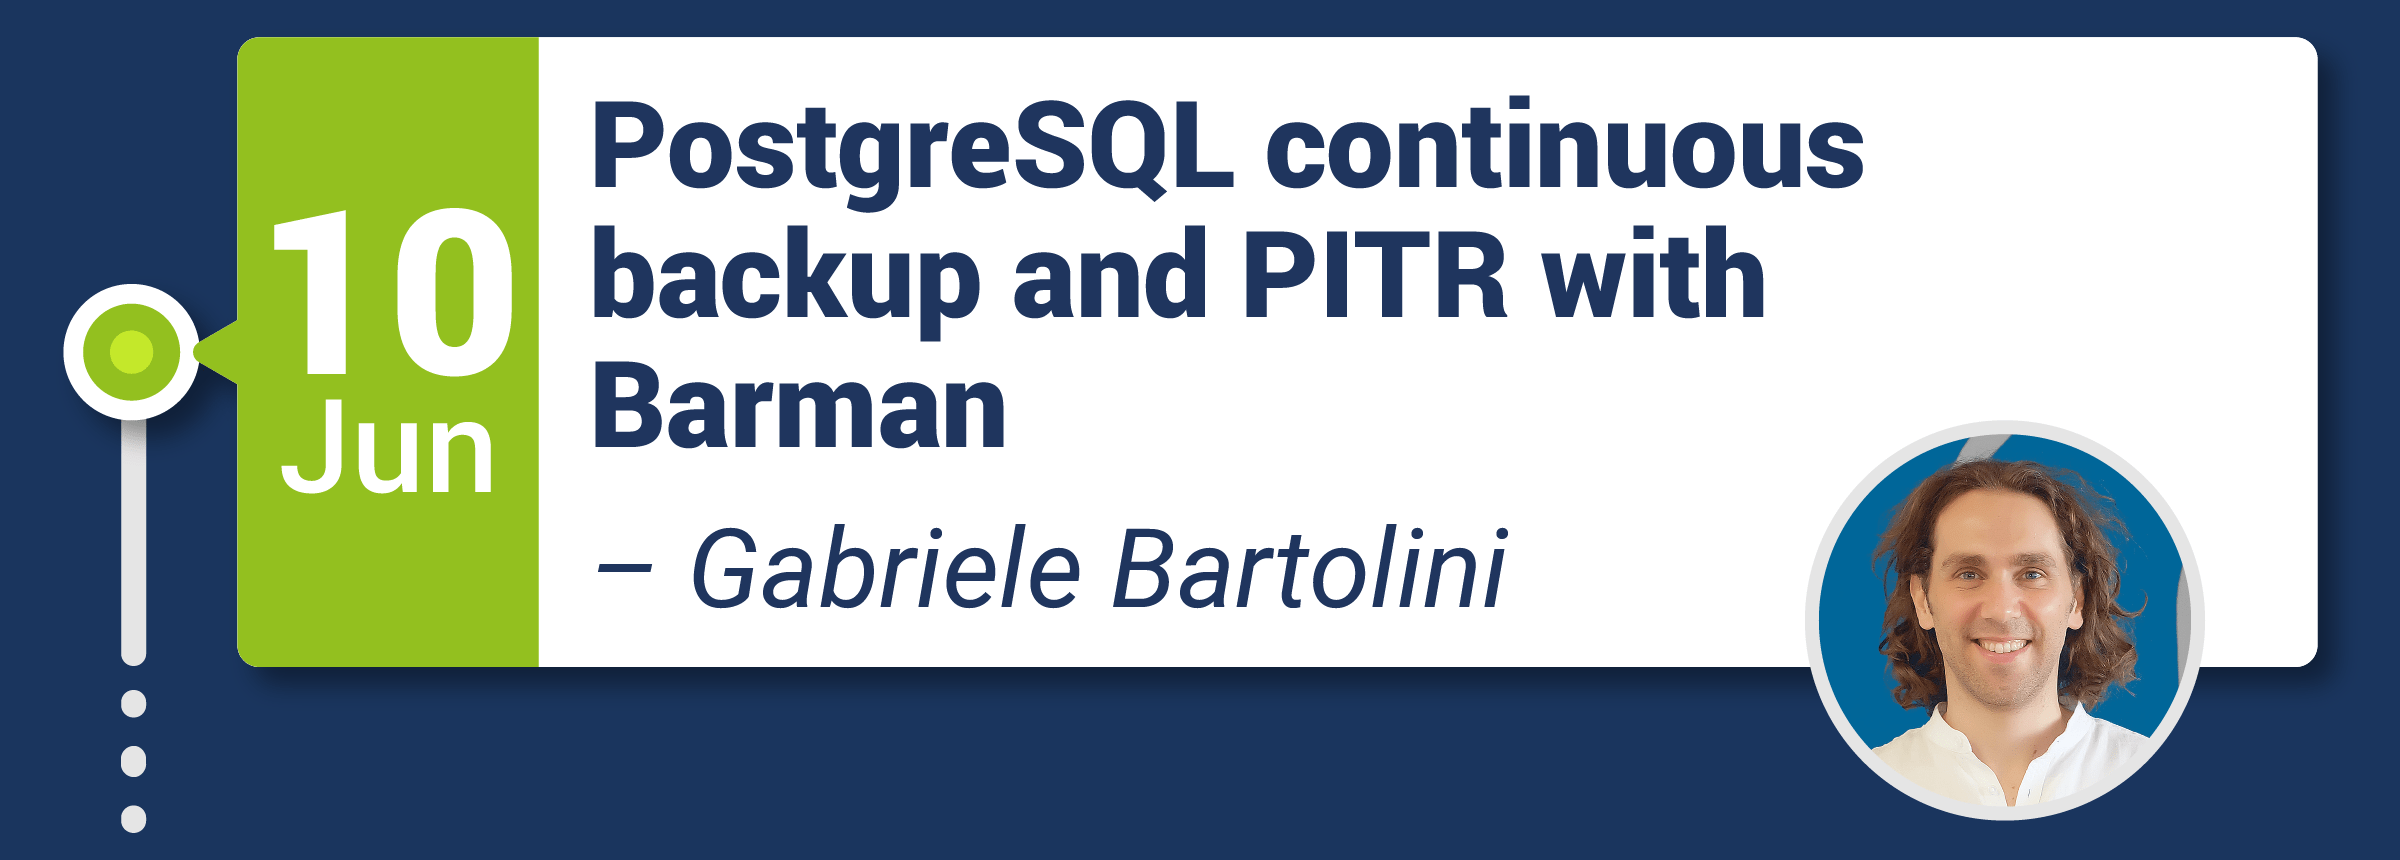 PostgreSQL continuous backup and PITR with Barman